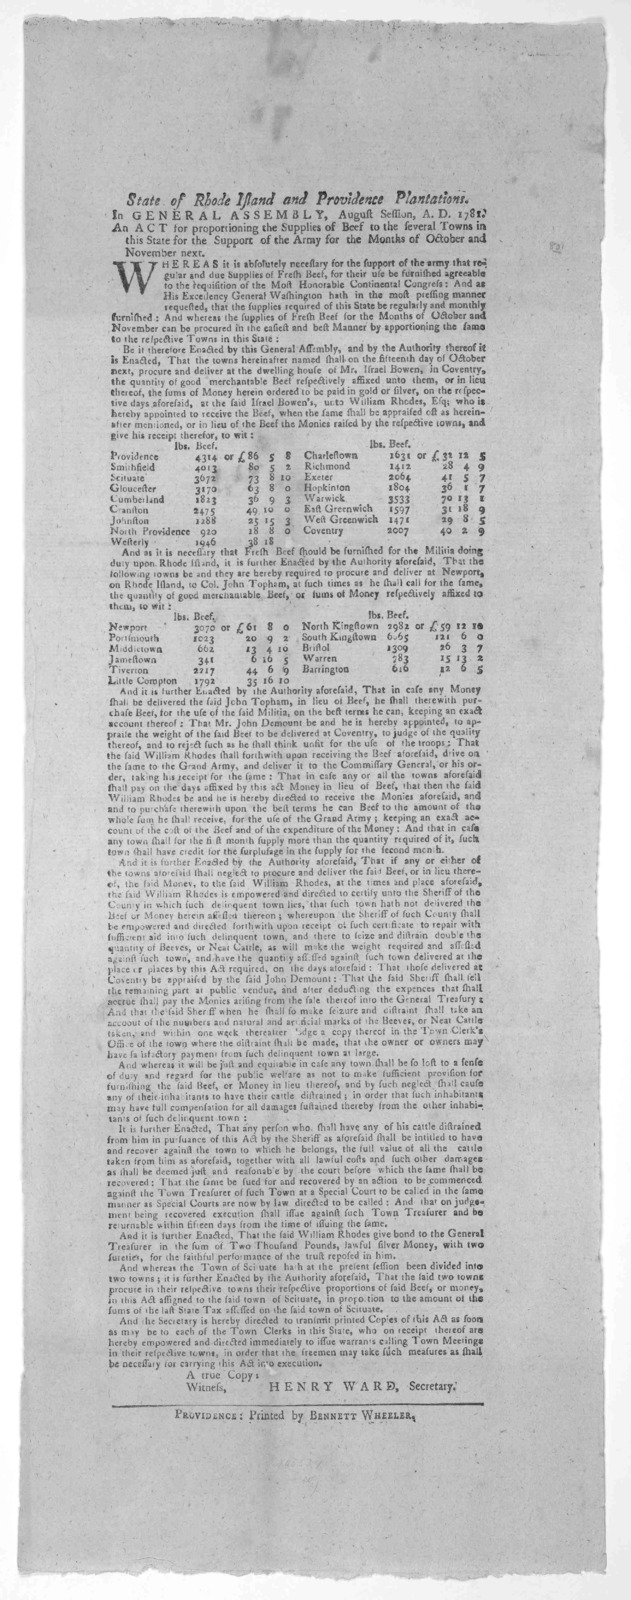 State of Rhode Island and Providence plantations. In General Assembly, August session, A. D. 1781. An act for proportioning the supplies of beef to the several towns in this State for the support of the army for the months of October and Novembe